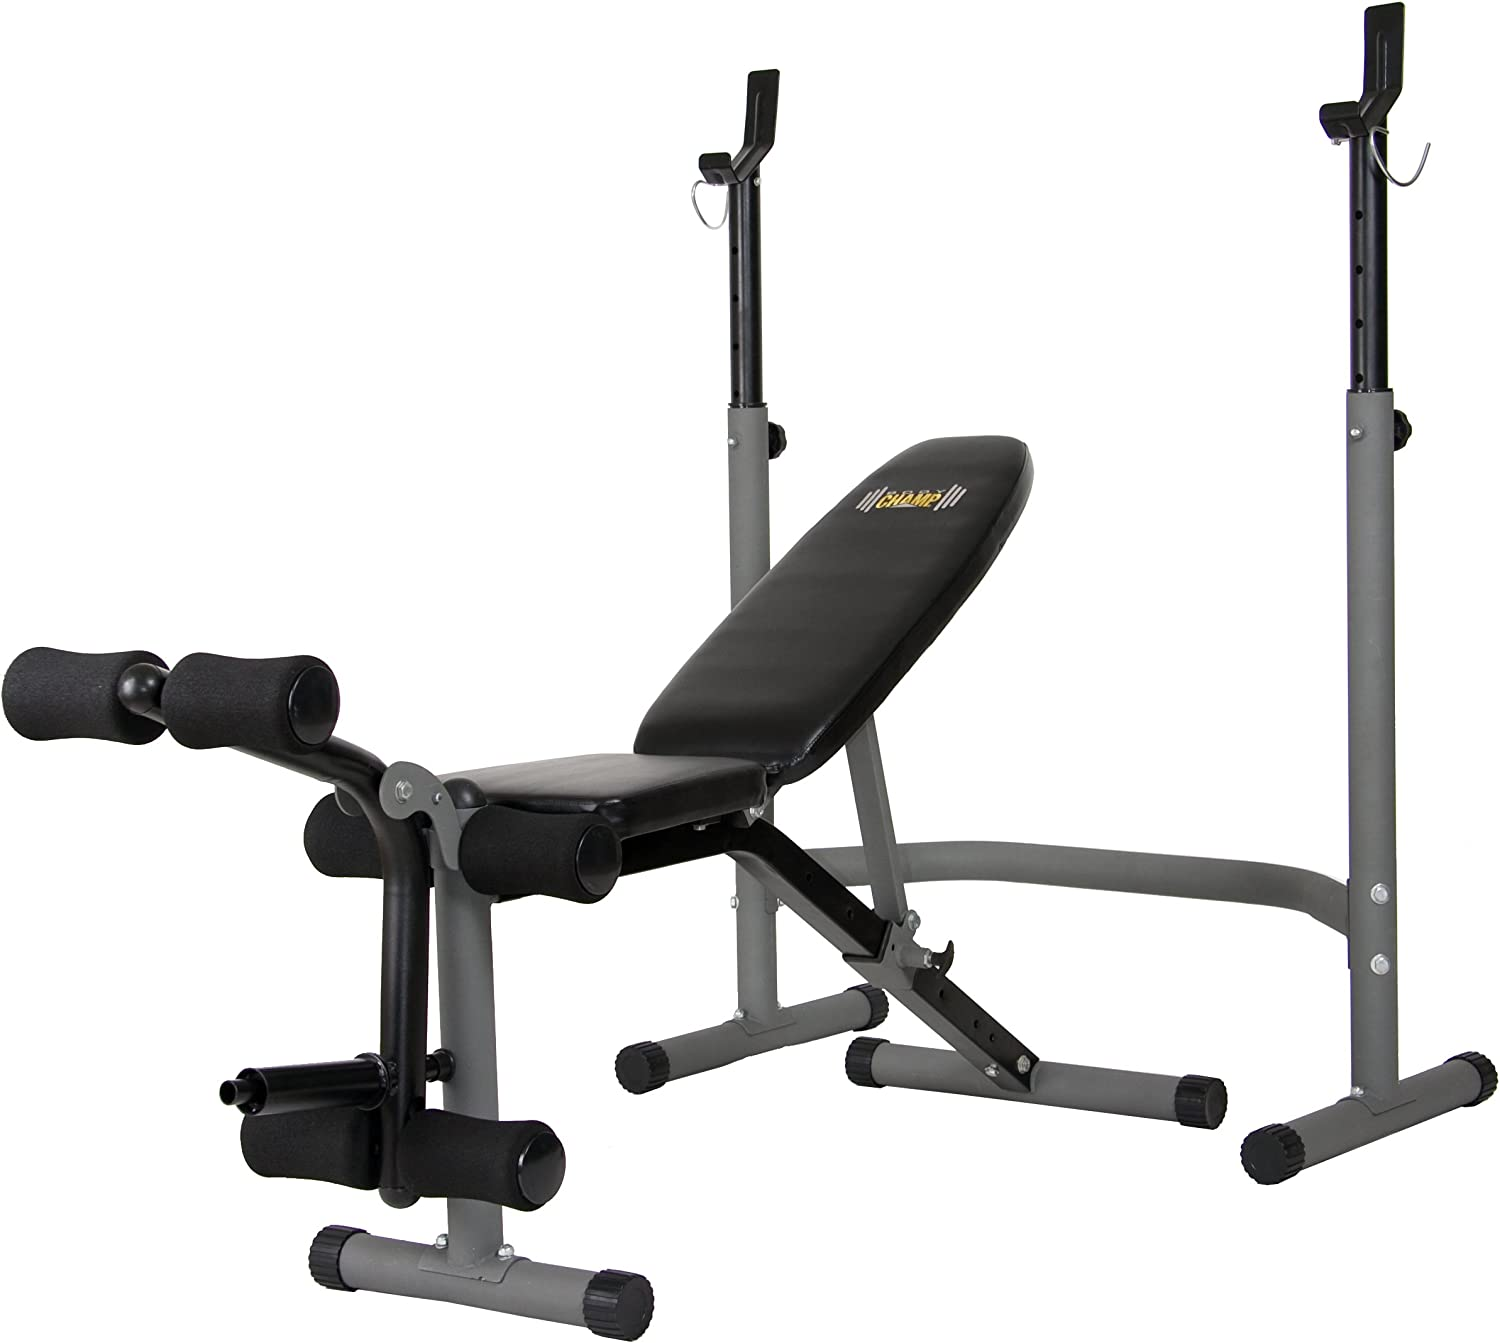 Body Power BCB3890 Olympic Width Weight Bench System